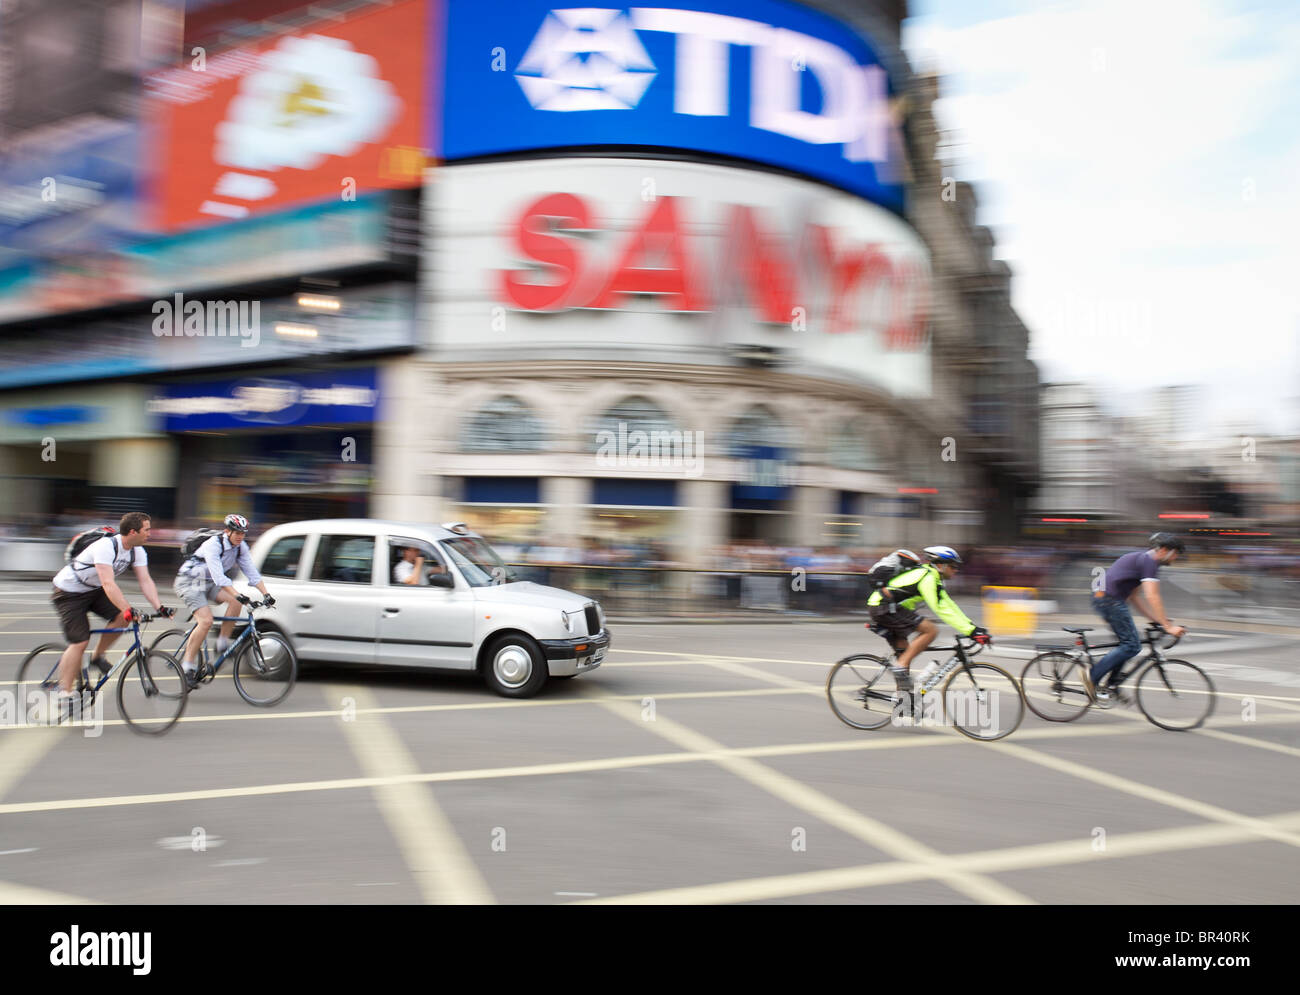 Cyclists in Piccadilly Circus, London - Stock Image